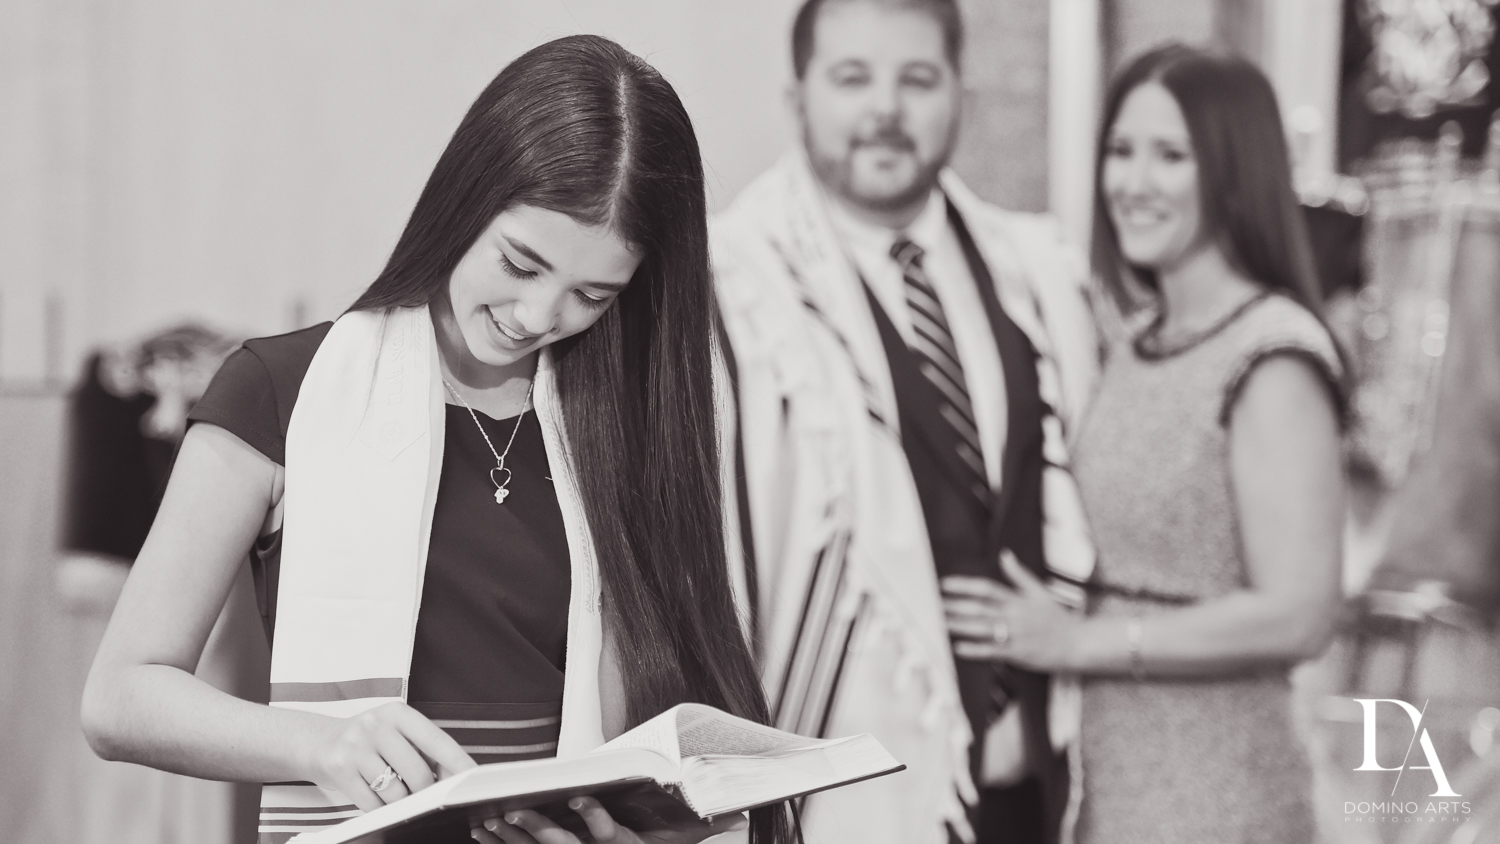 Mitzvah girl reading Torah at Bnai Torah Boca Raton South Florida by Domino Arts Photography